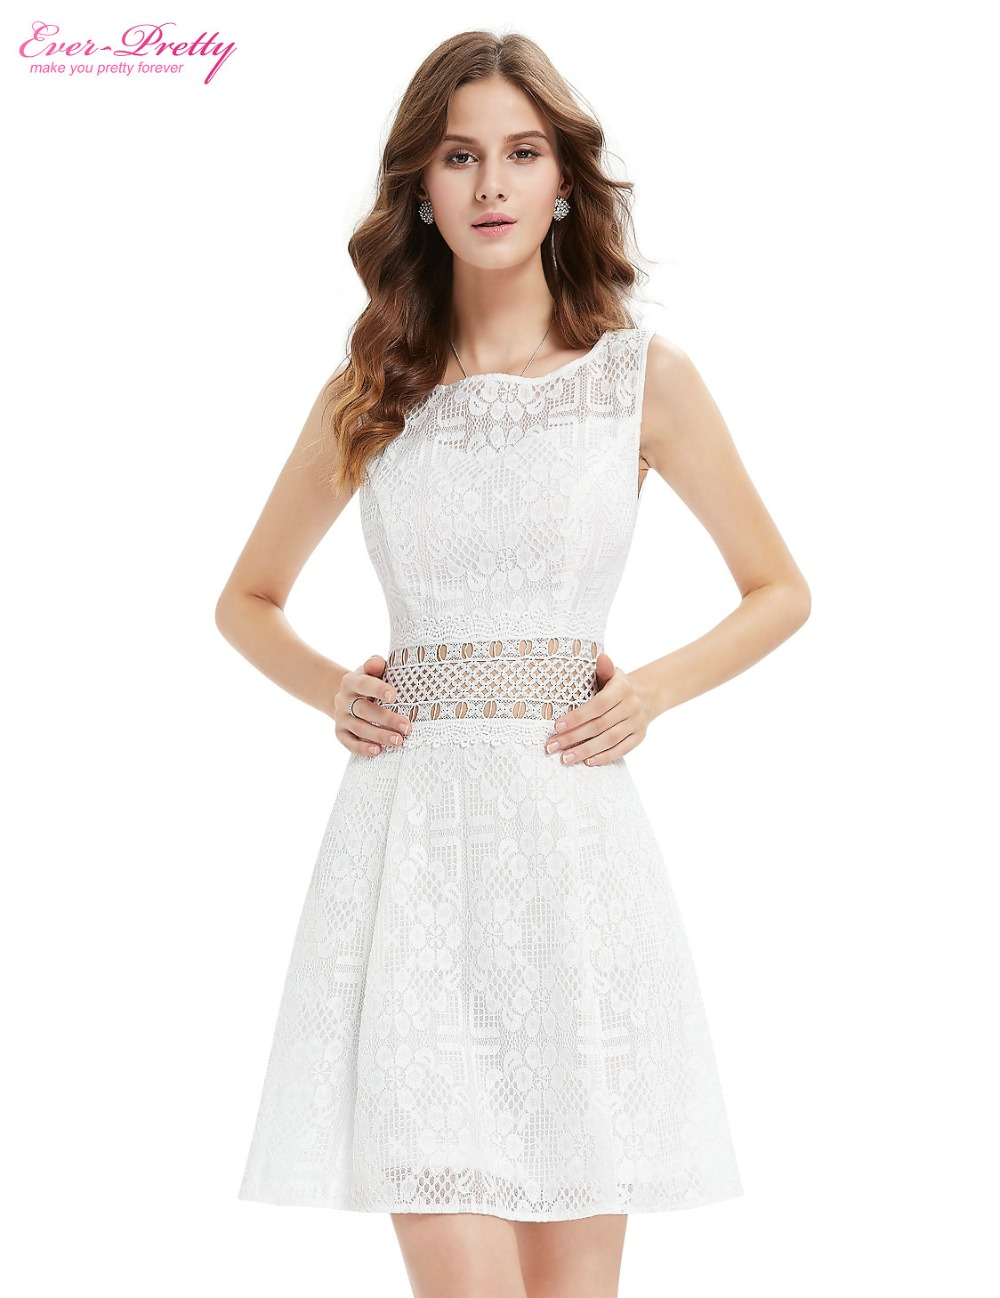 White dress cocktail party - Ever Pretty Cocktail Party Dresses Ap05409wh Cute Roud Neck Knee Length Casual White Short Casual